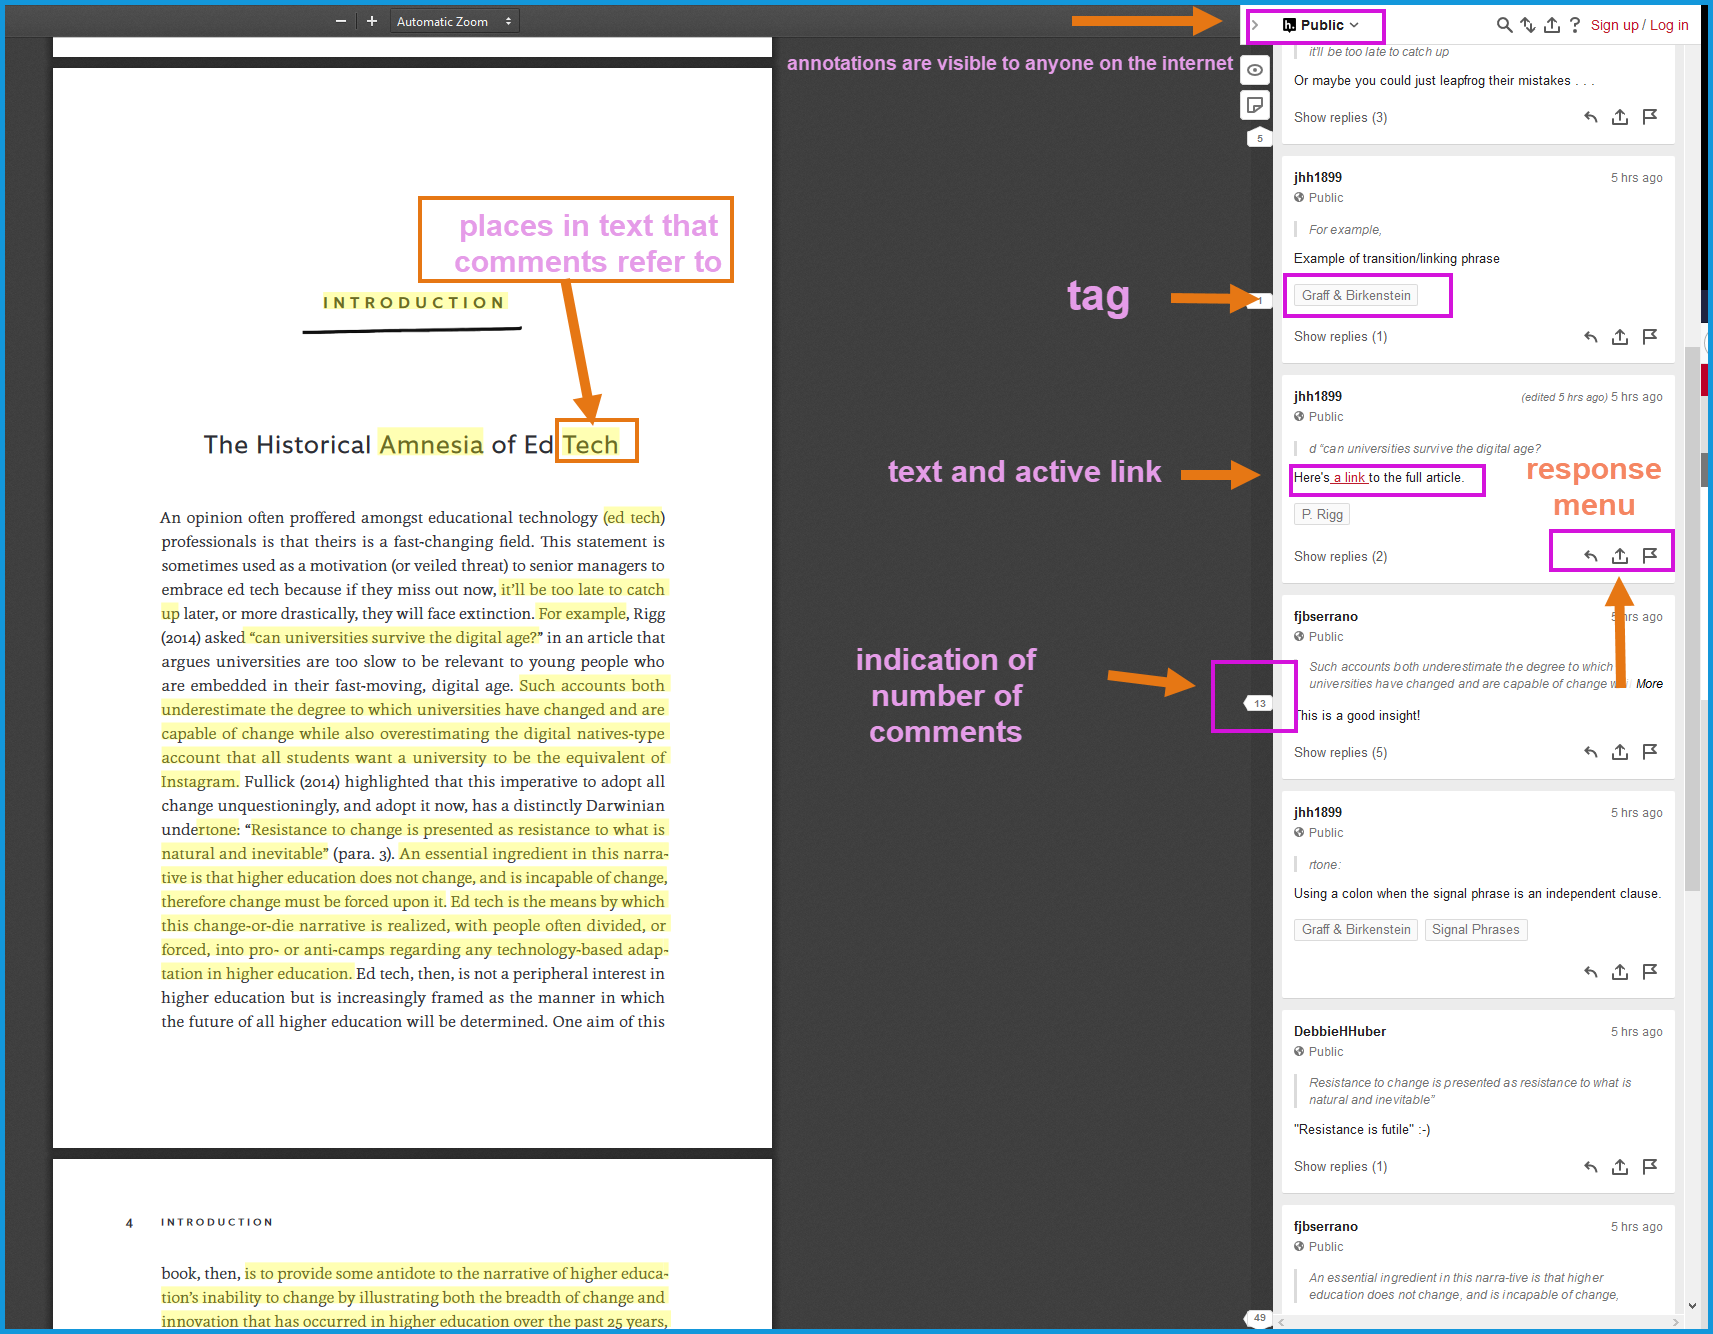 This pictures shows an annotated page of a book to help viewers understand how comments can contain text, active links, how they are tagged, etc.